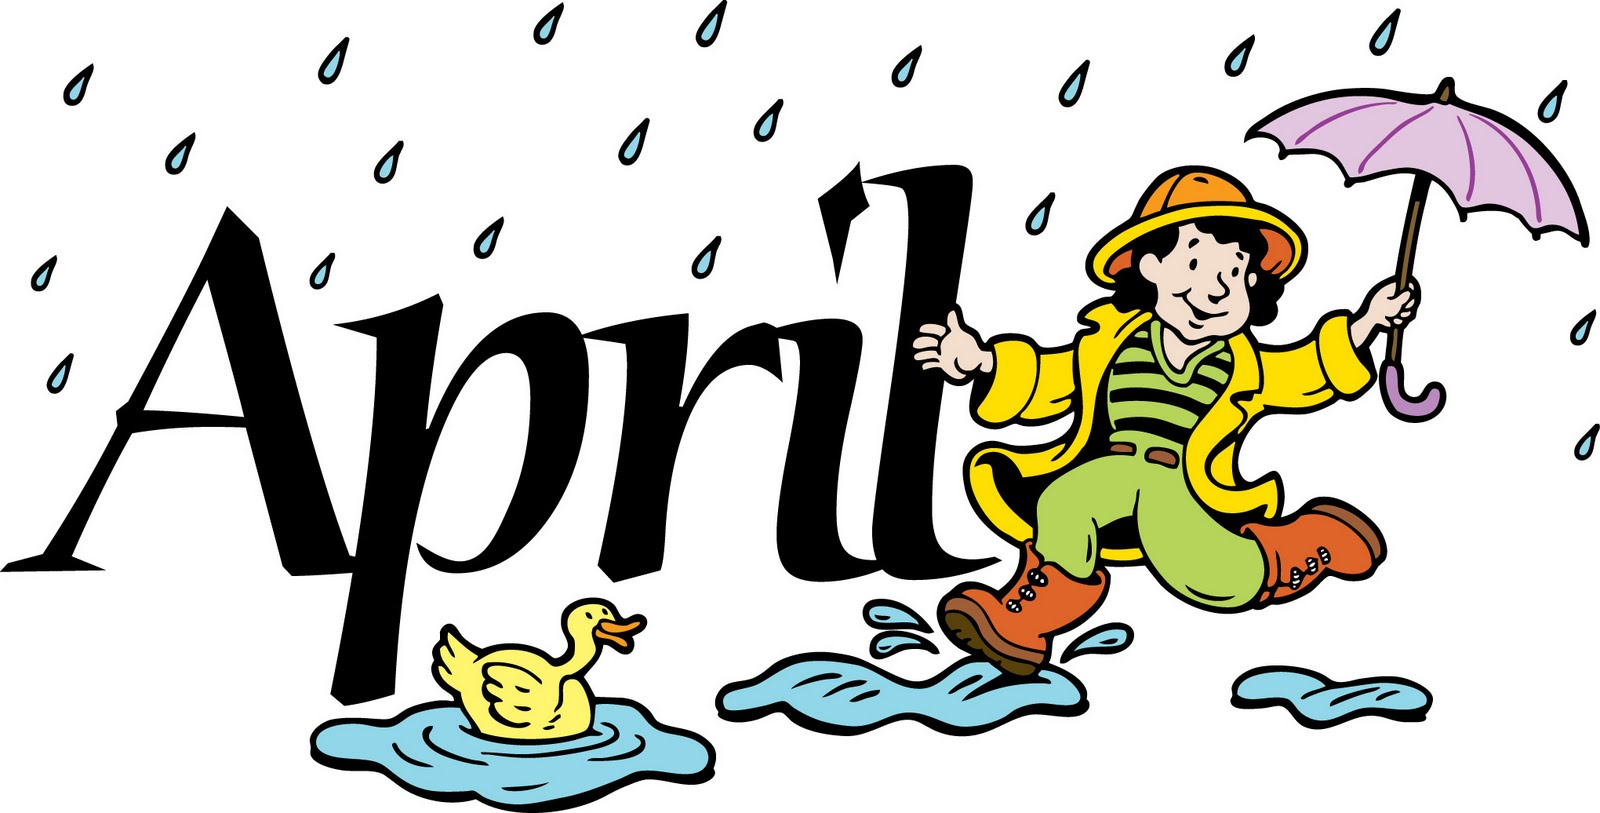 hight resolution of free month of april clip art clipart